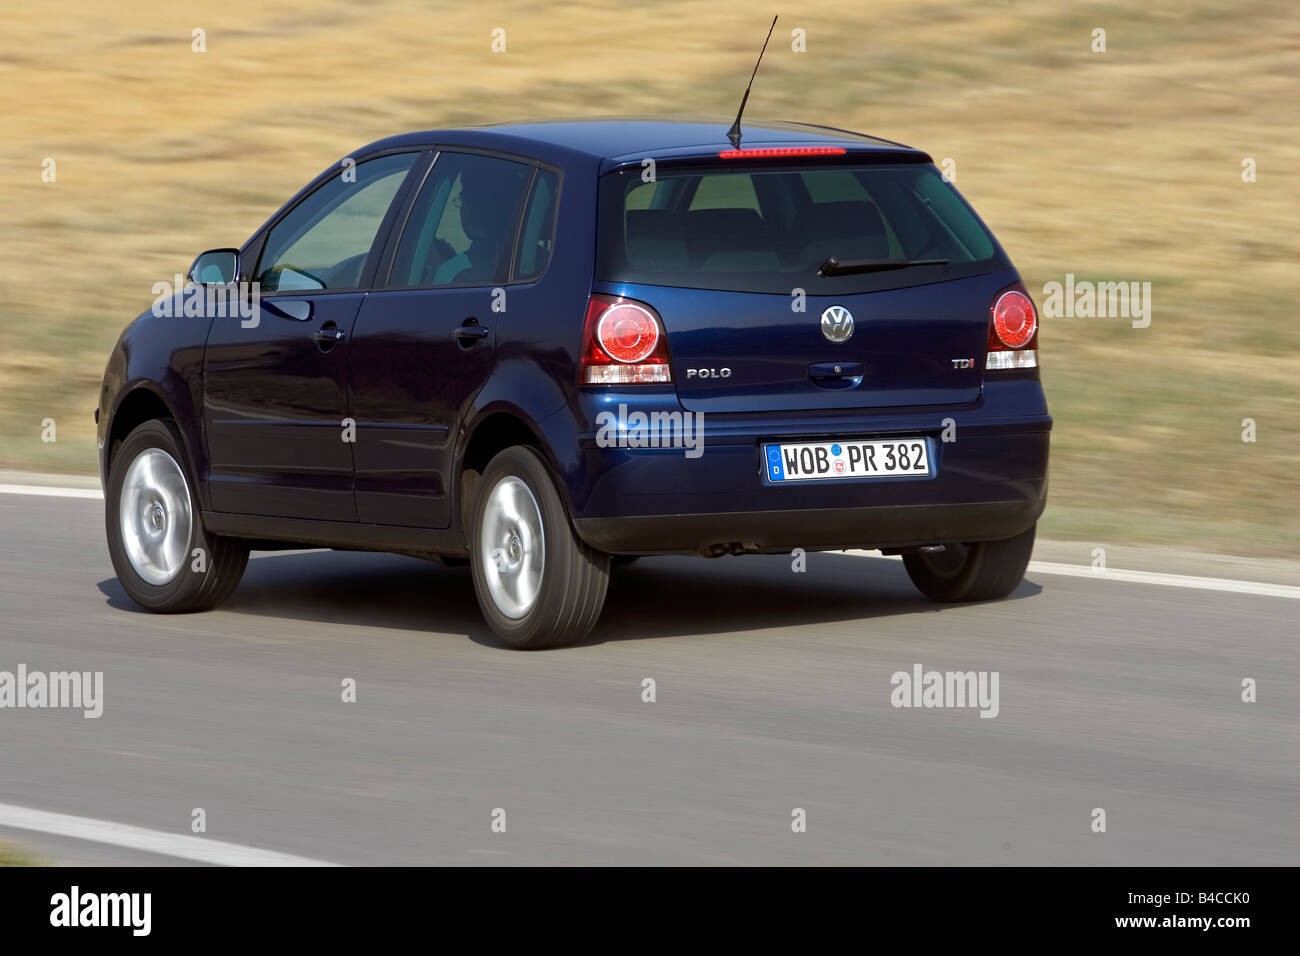 Car Vw Volkswagen Polo 1 9 Tdi Model Year 2005 Dark